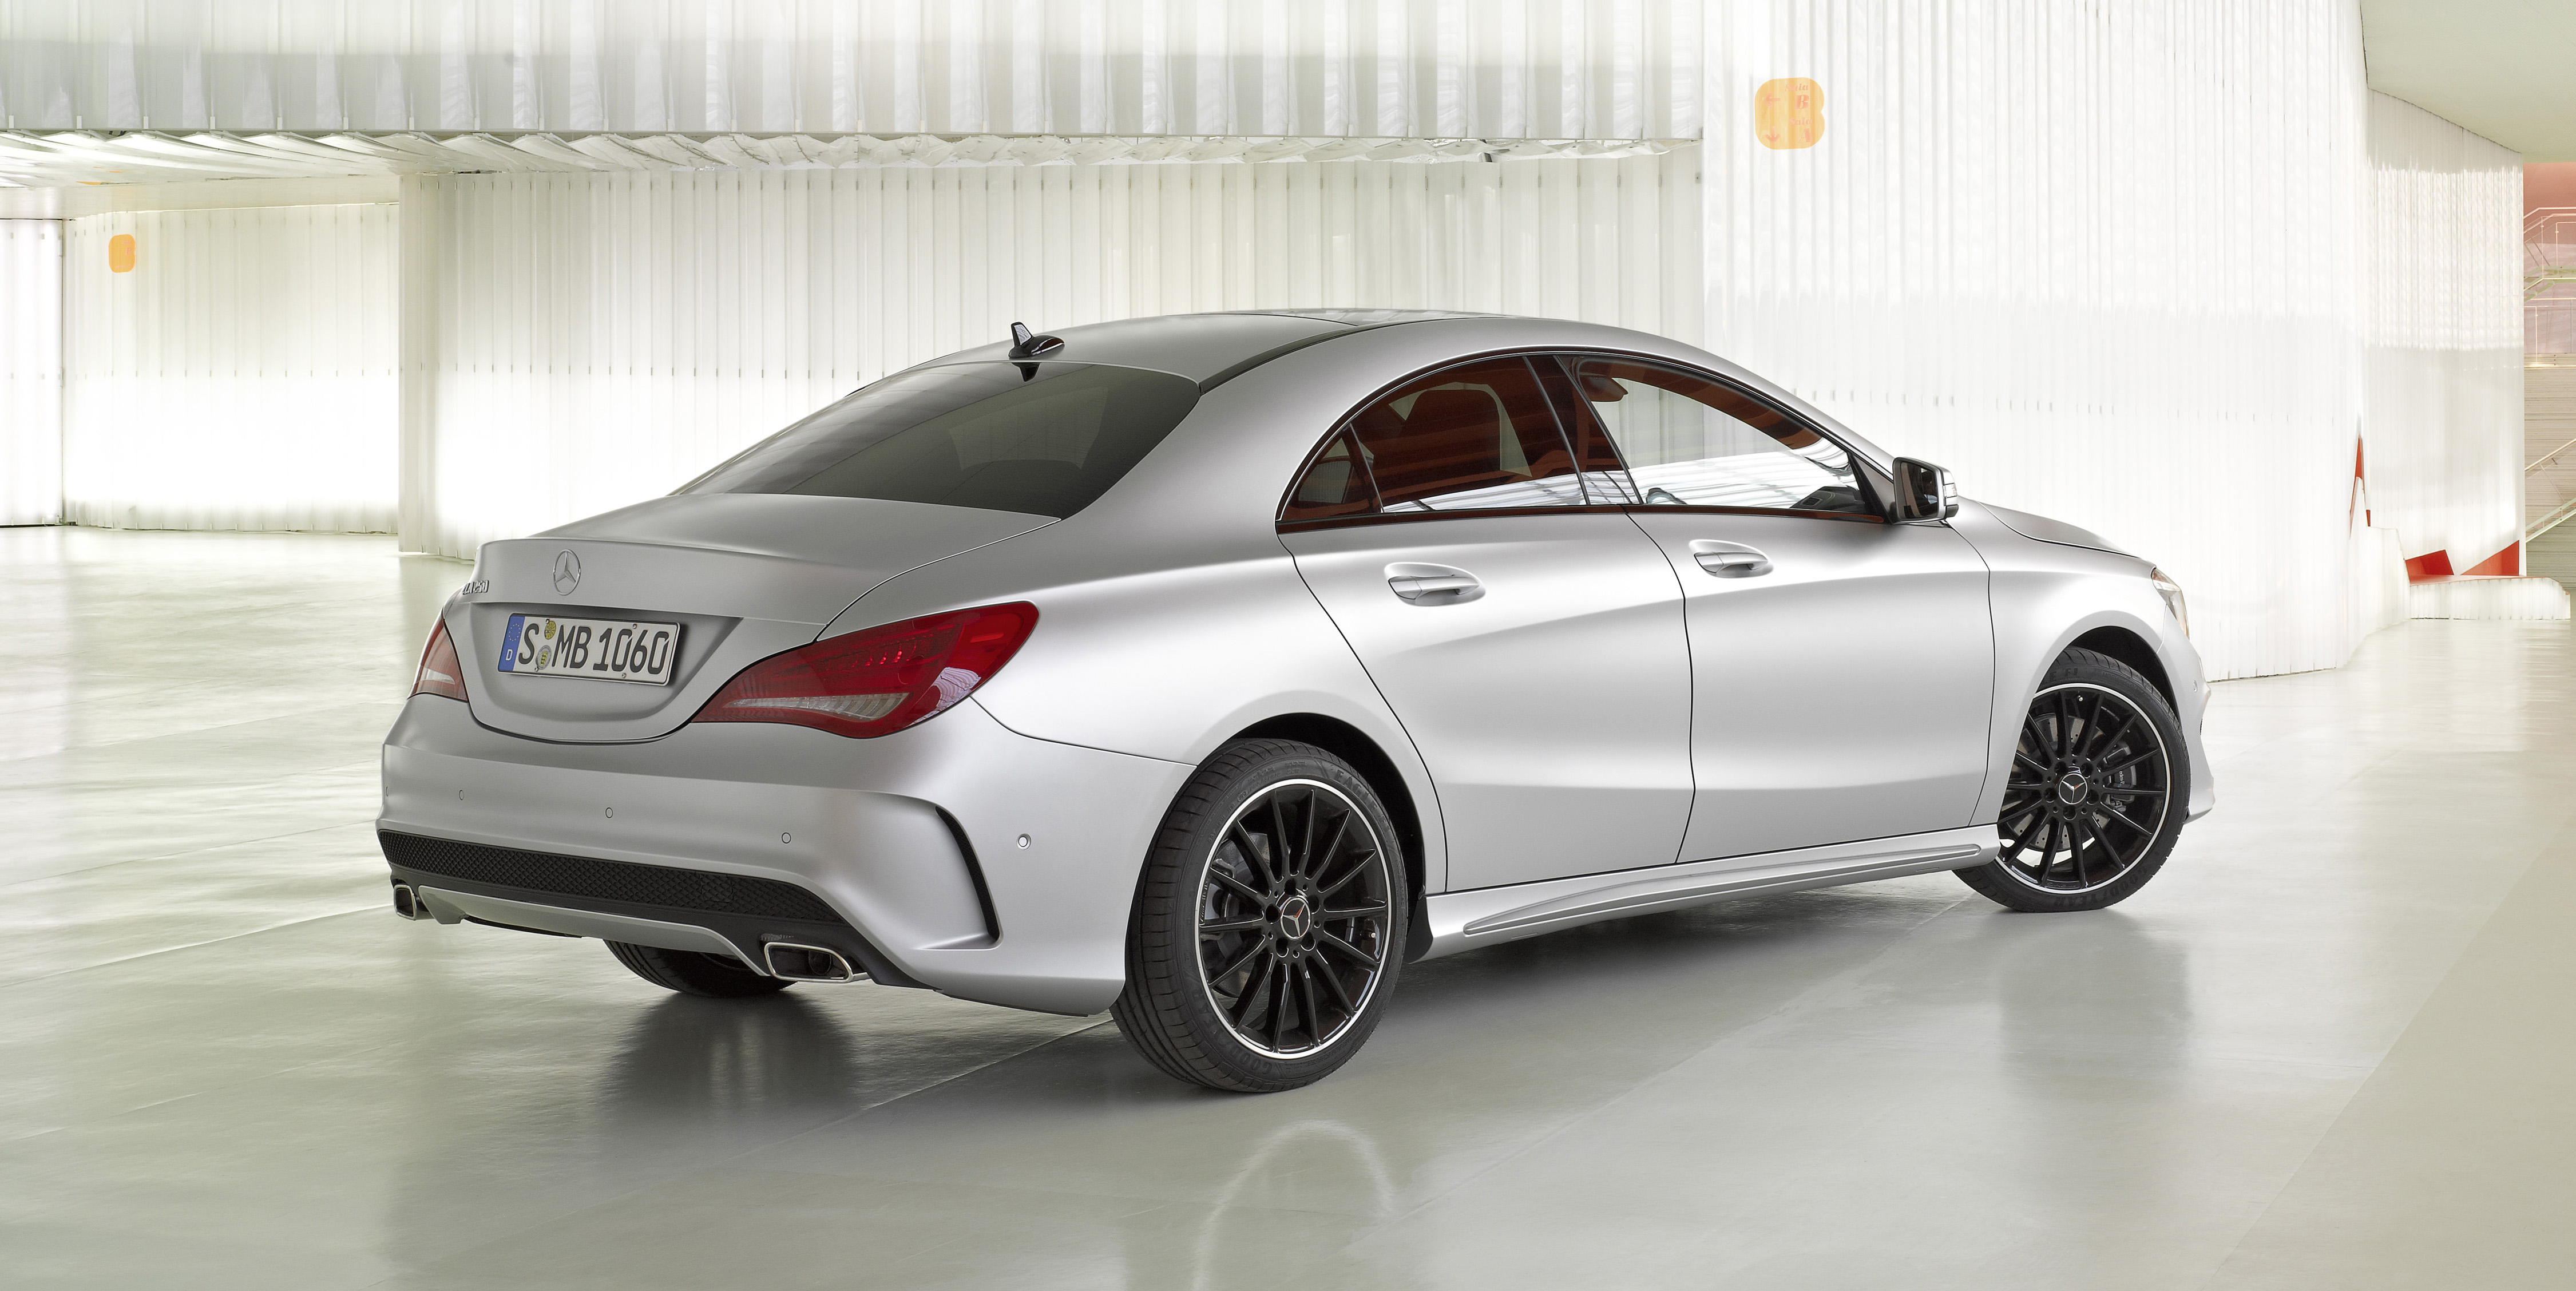 New MercedesBenz CLAClass makes its debut Image 149601